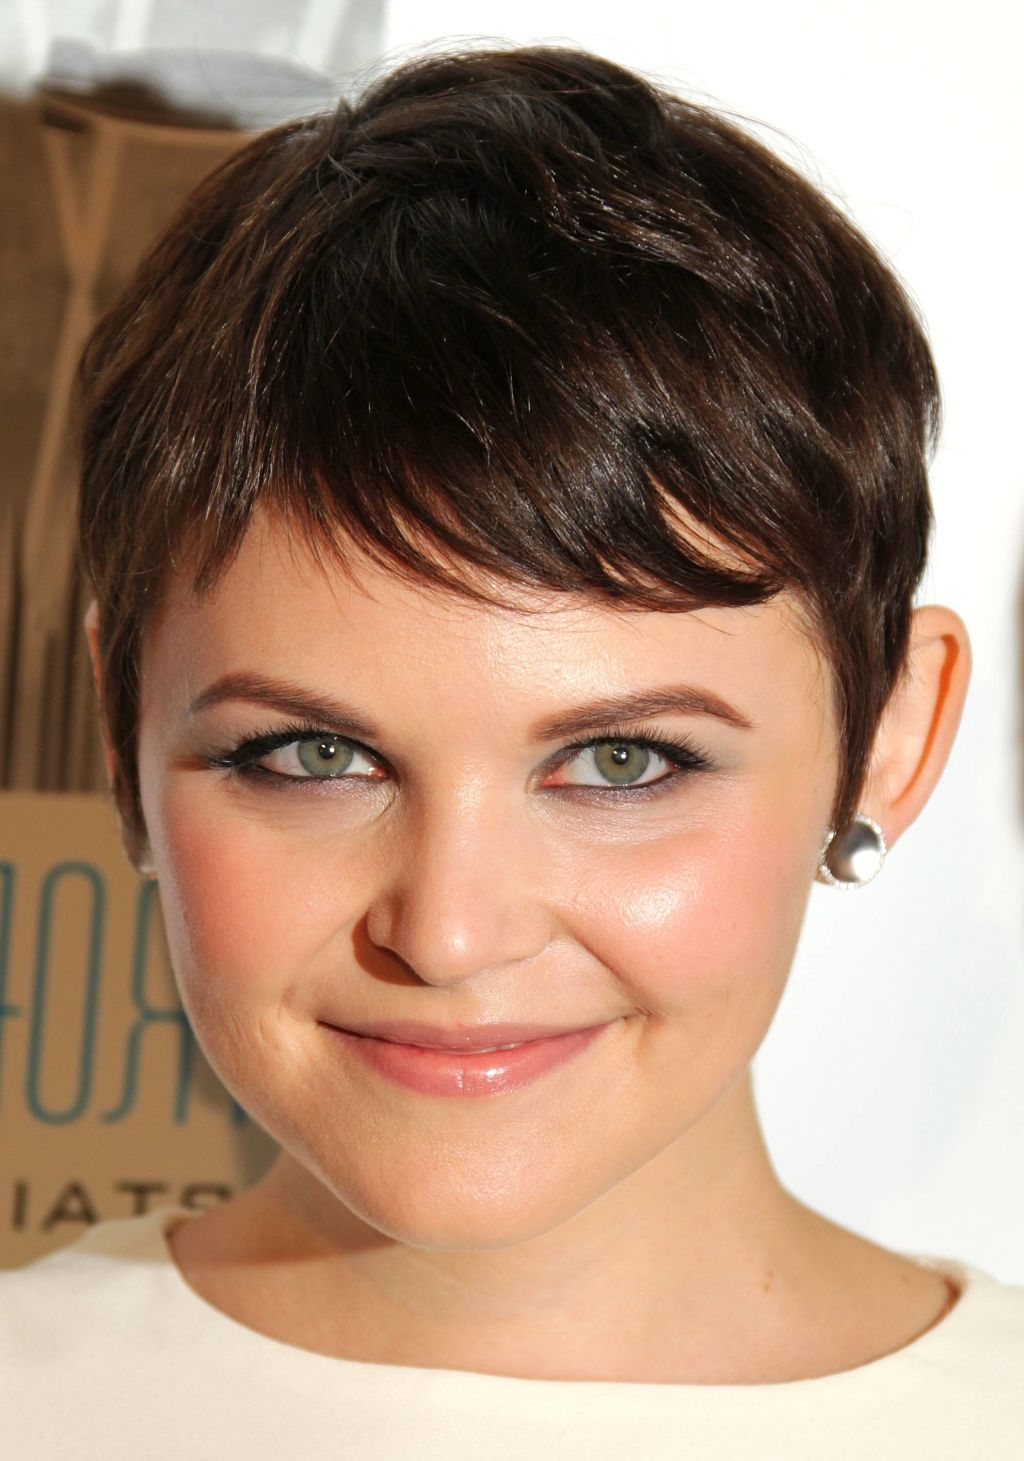 35 sassy Short haircuts for women that Brings Complete Elegance ...